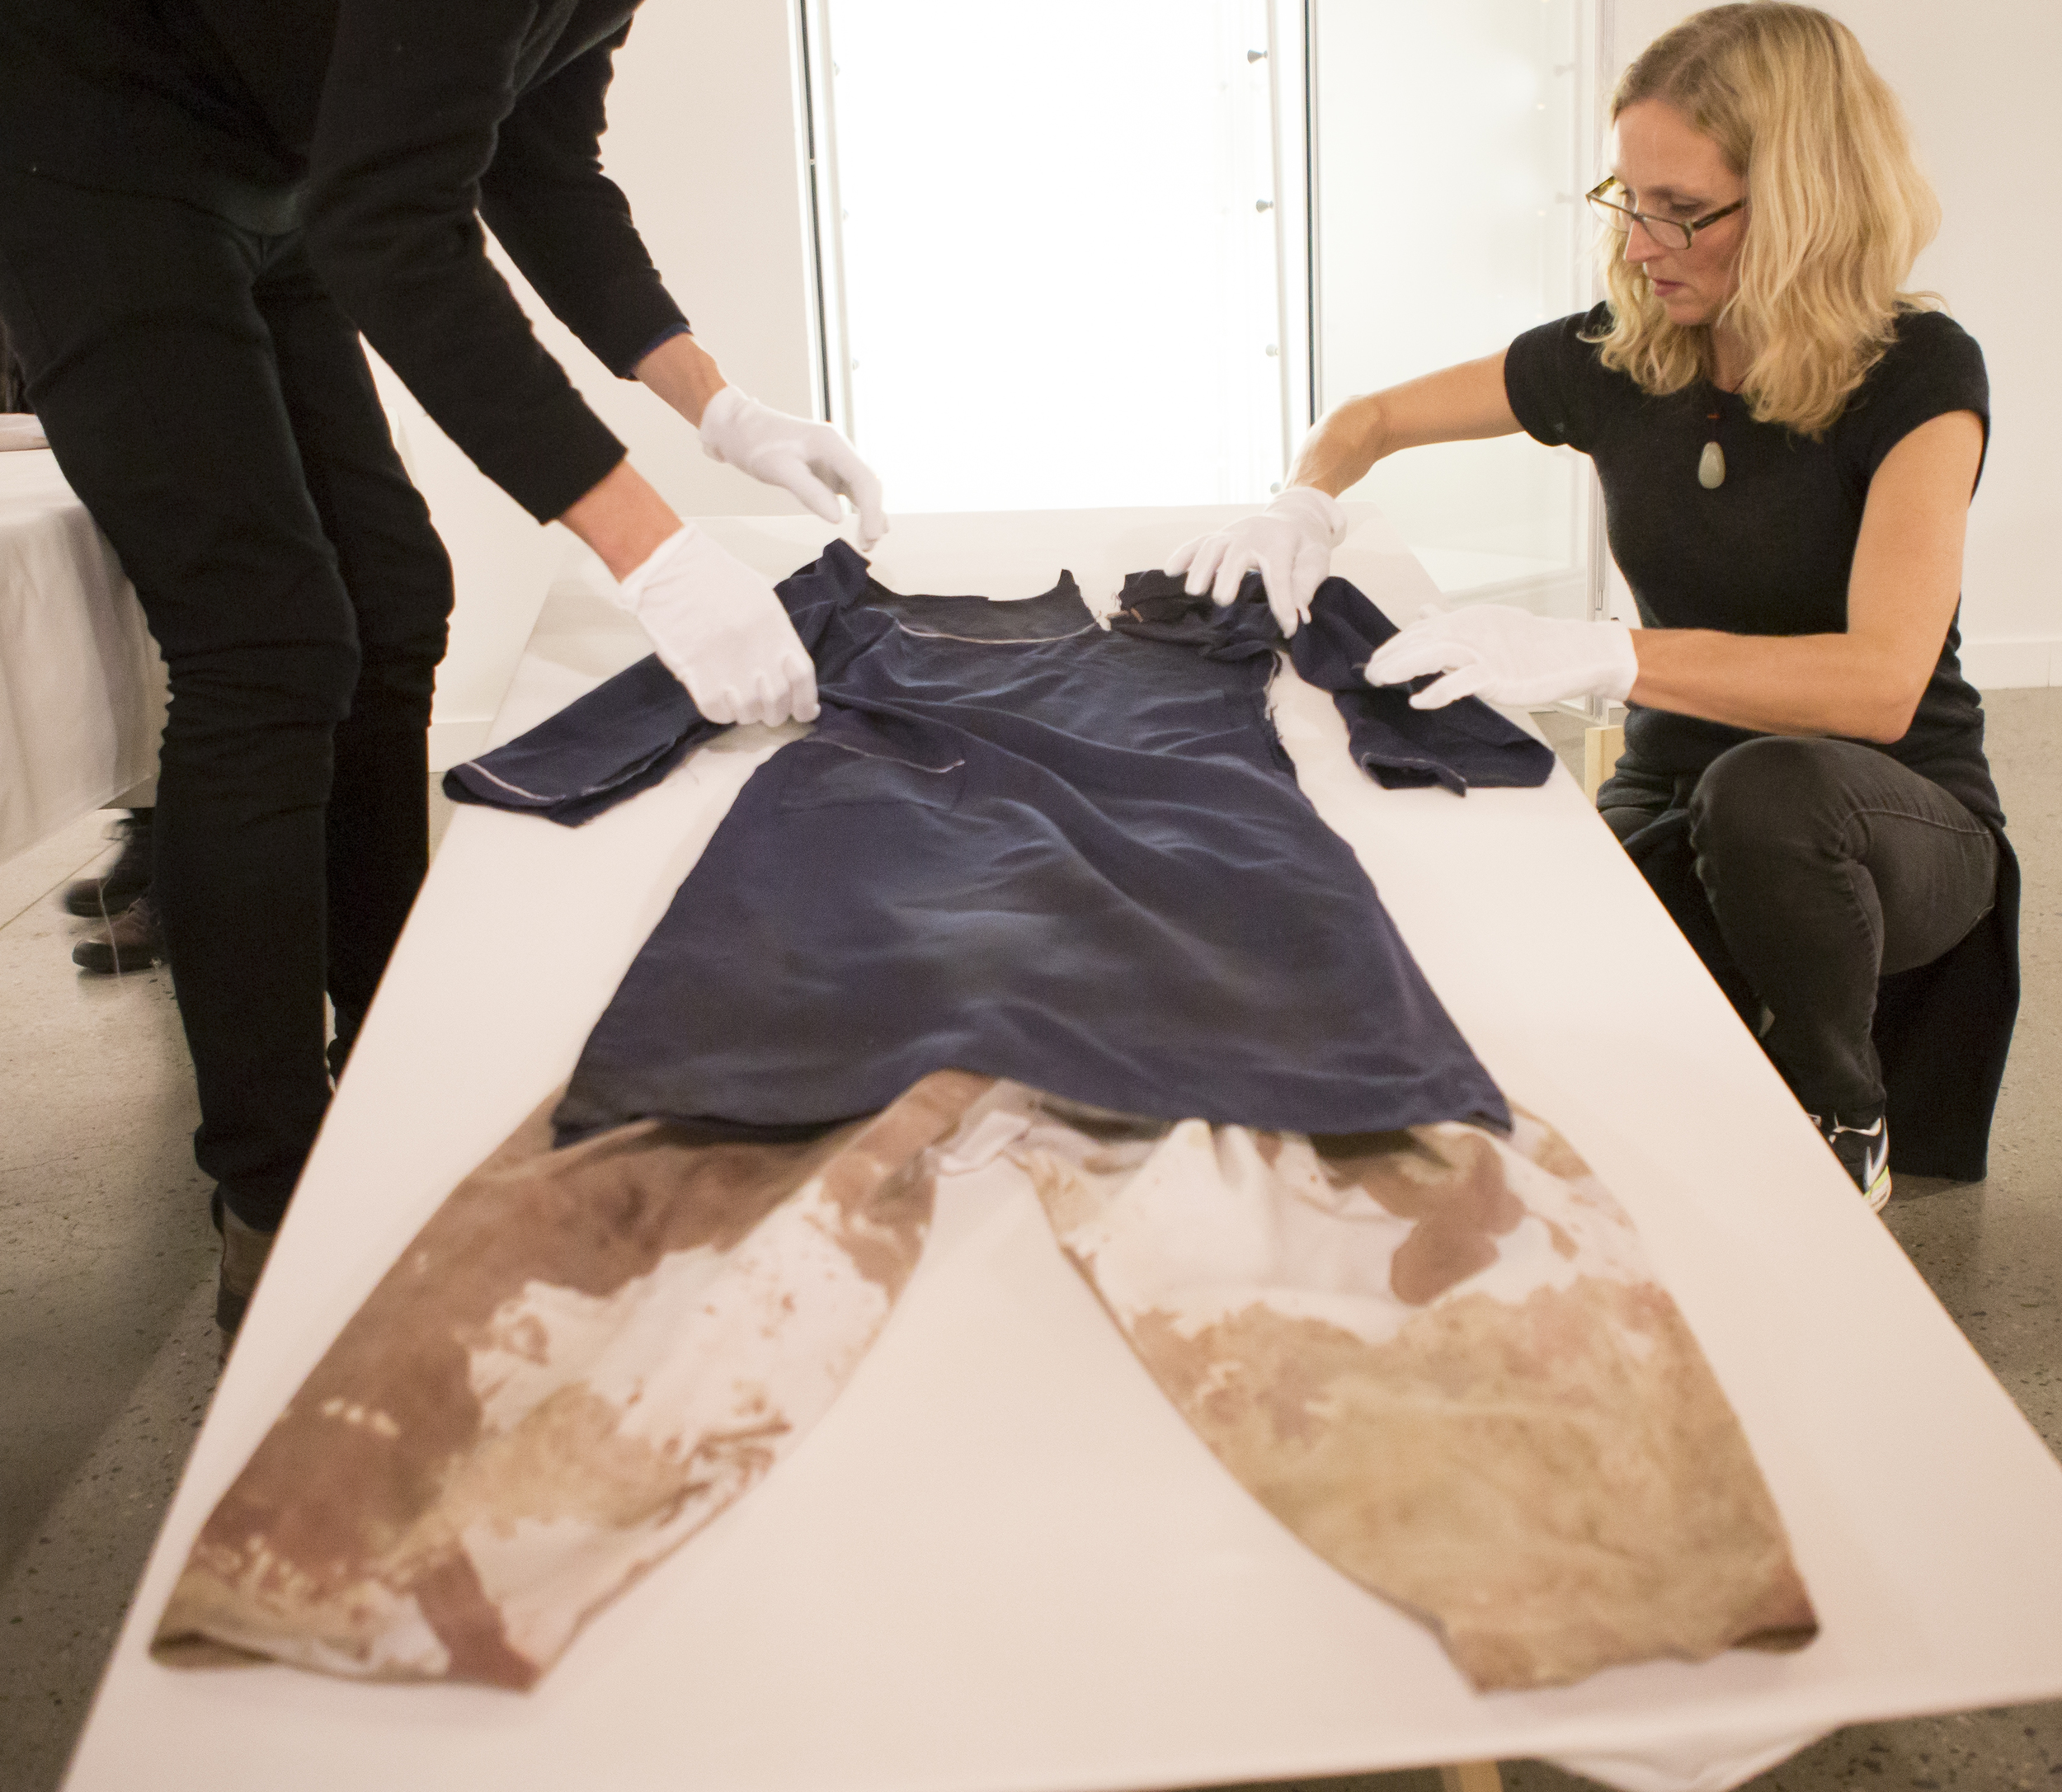 The clothes that Nobel Peace Prize winner Malala Yousafzai was shot in